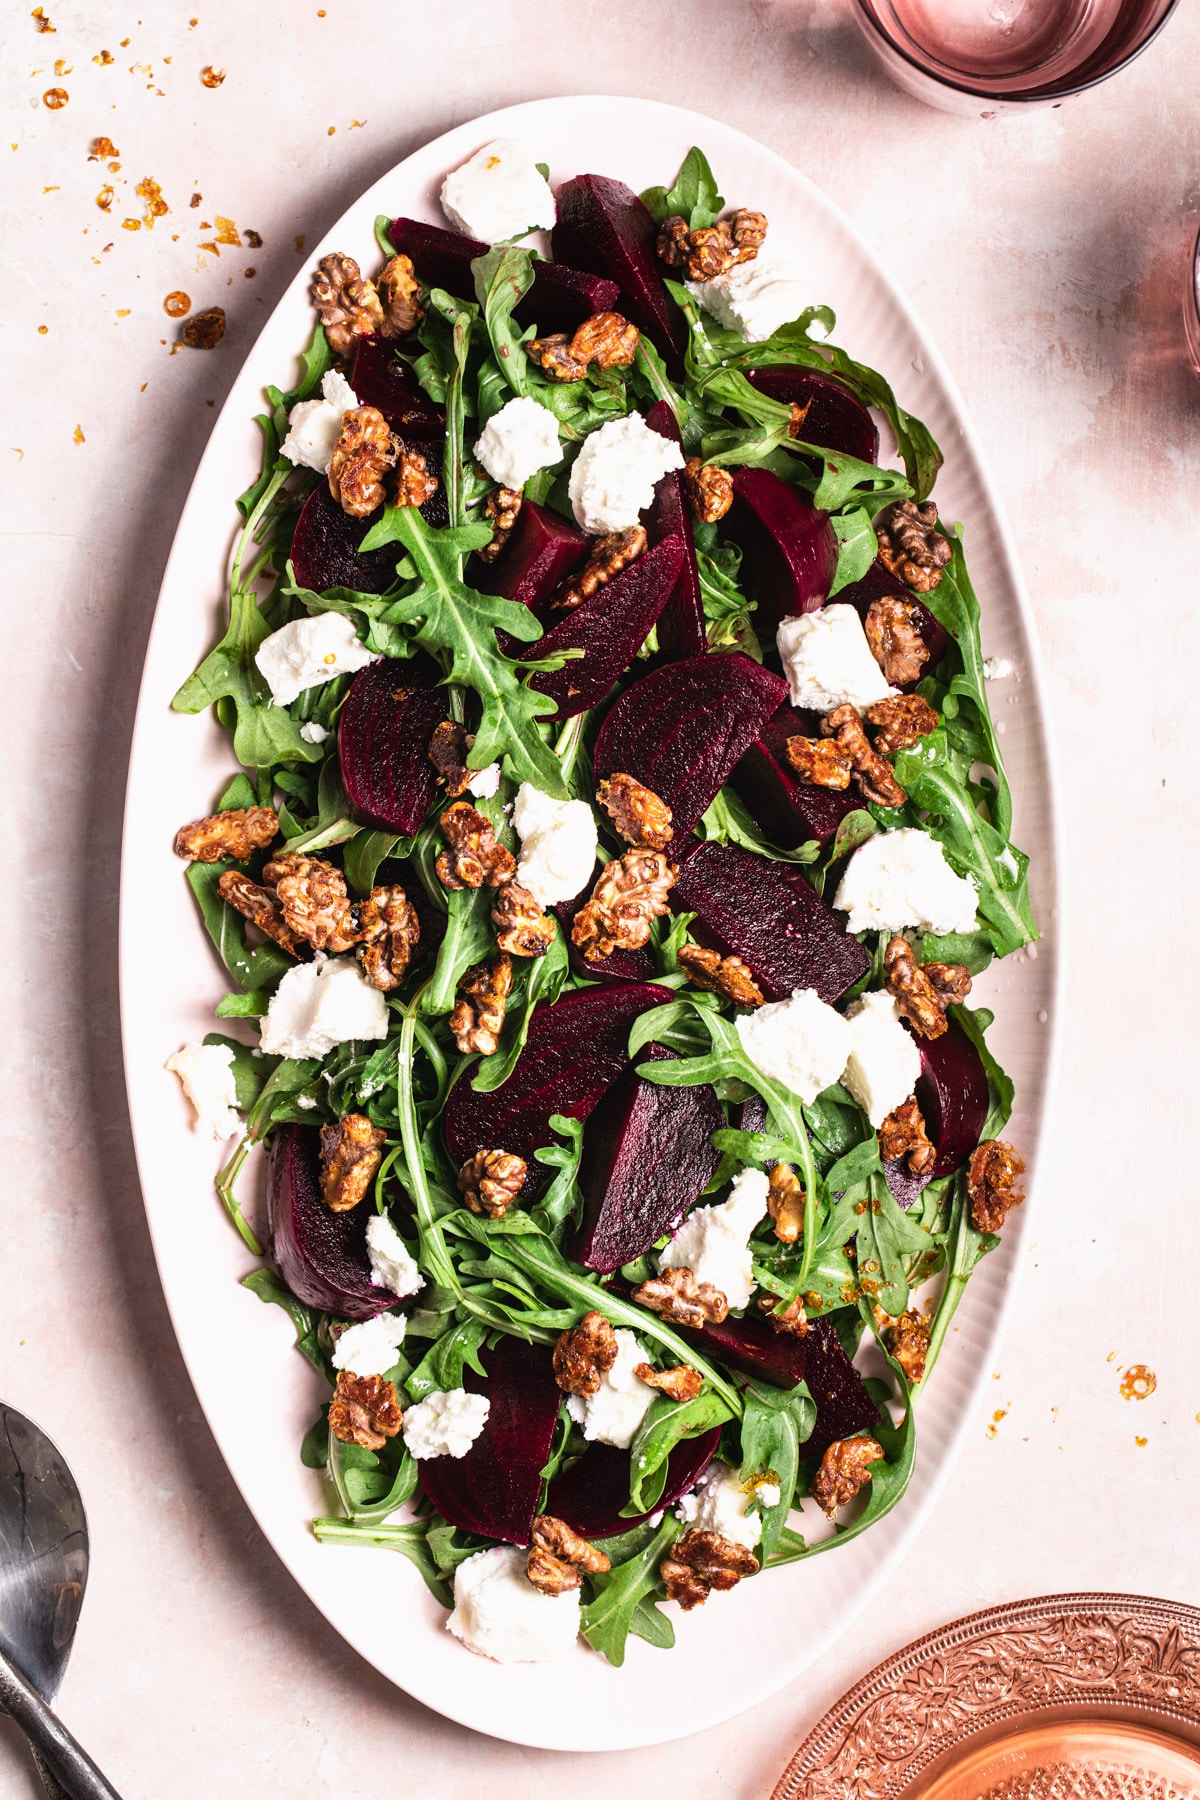 beetroot salad with goats cheese and candied walnuts